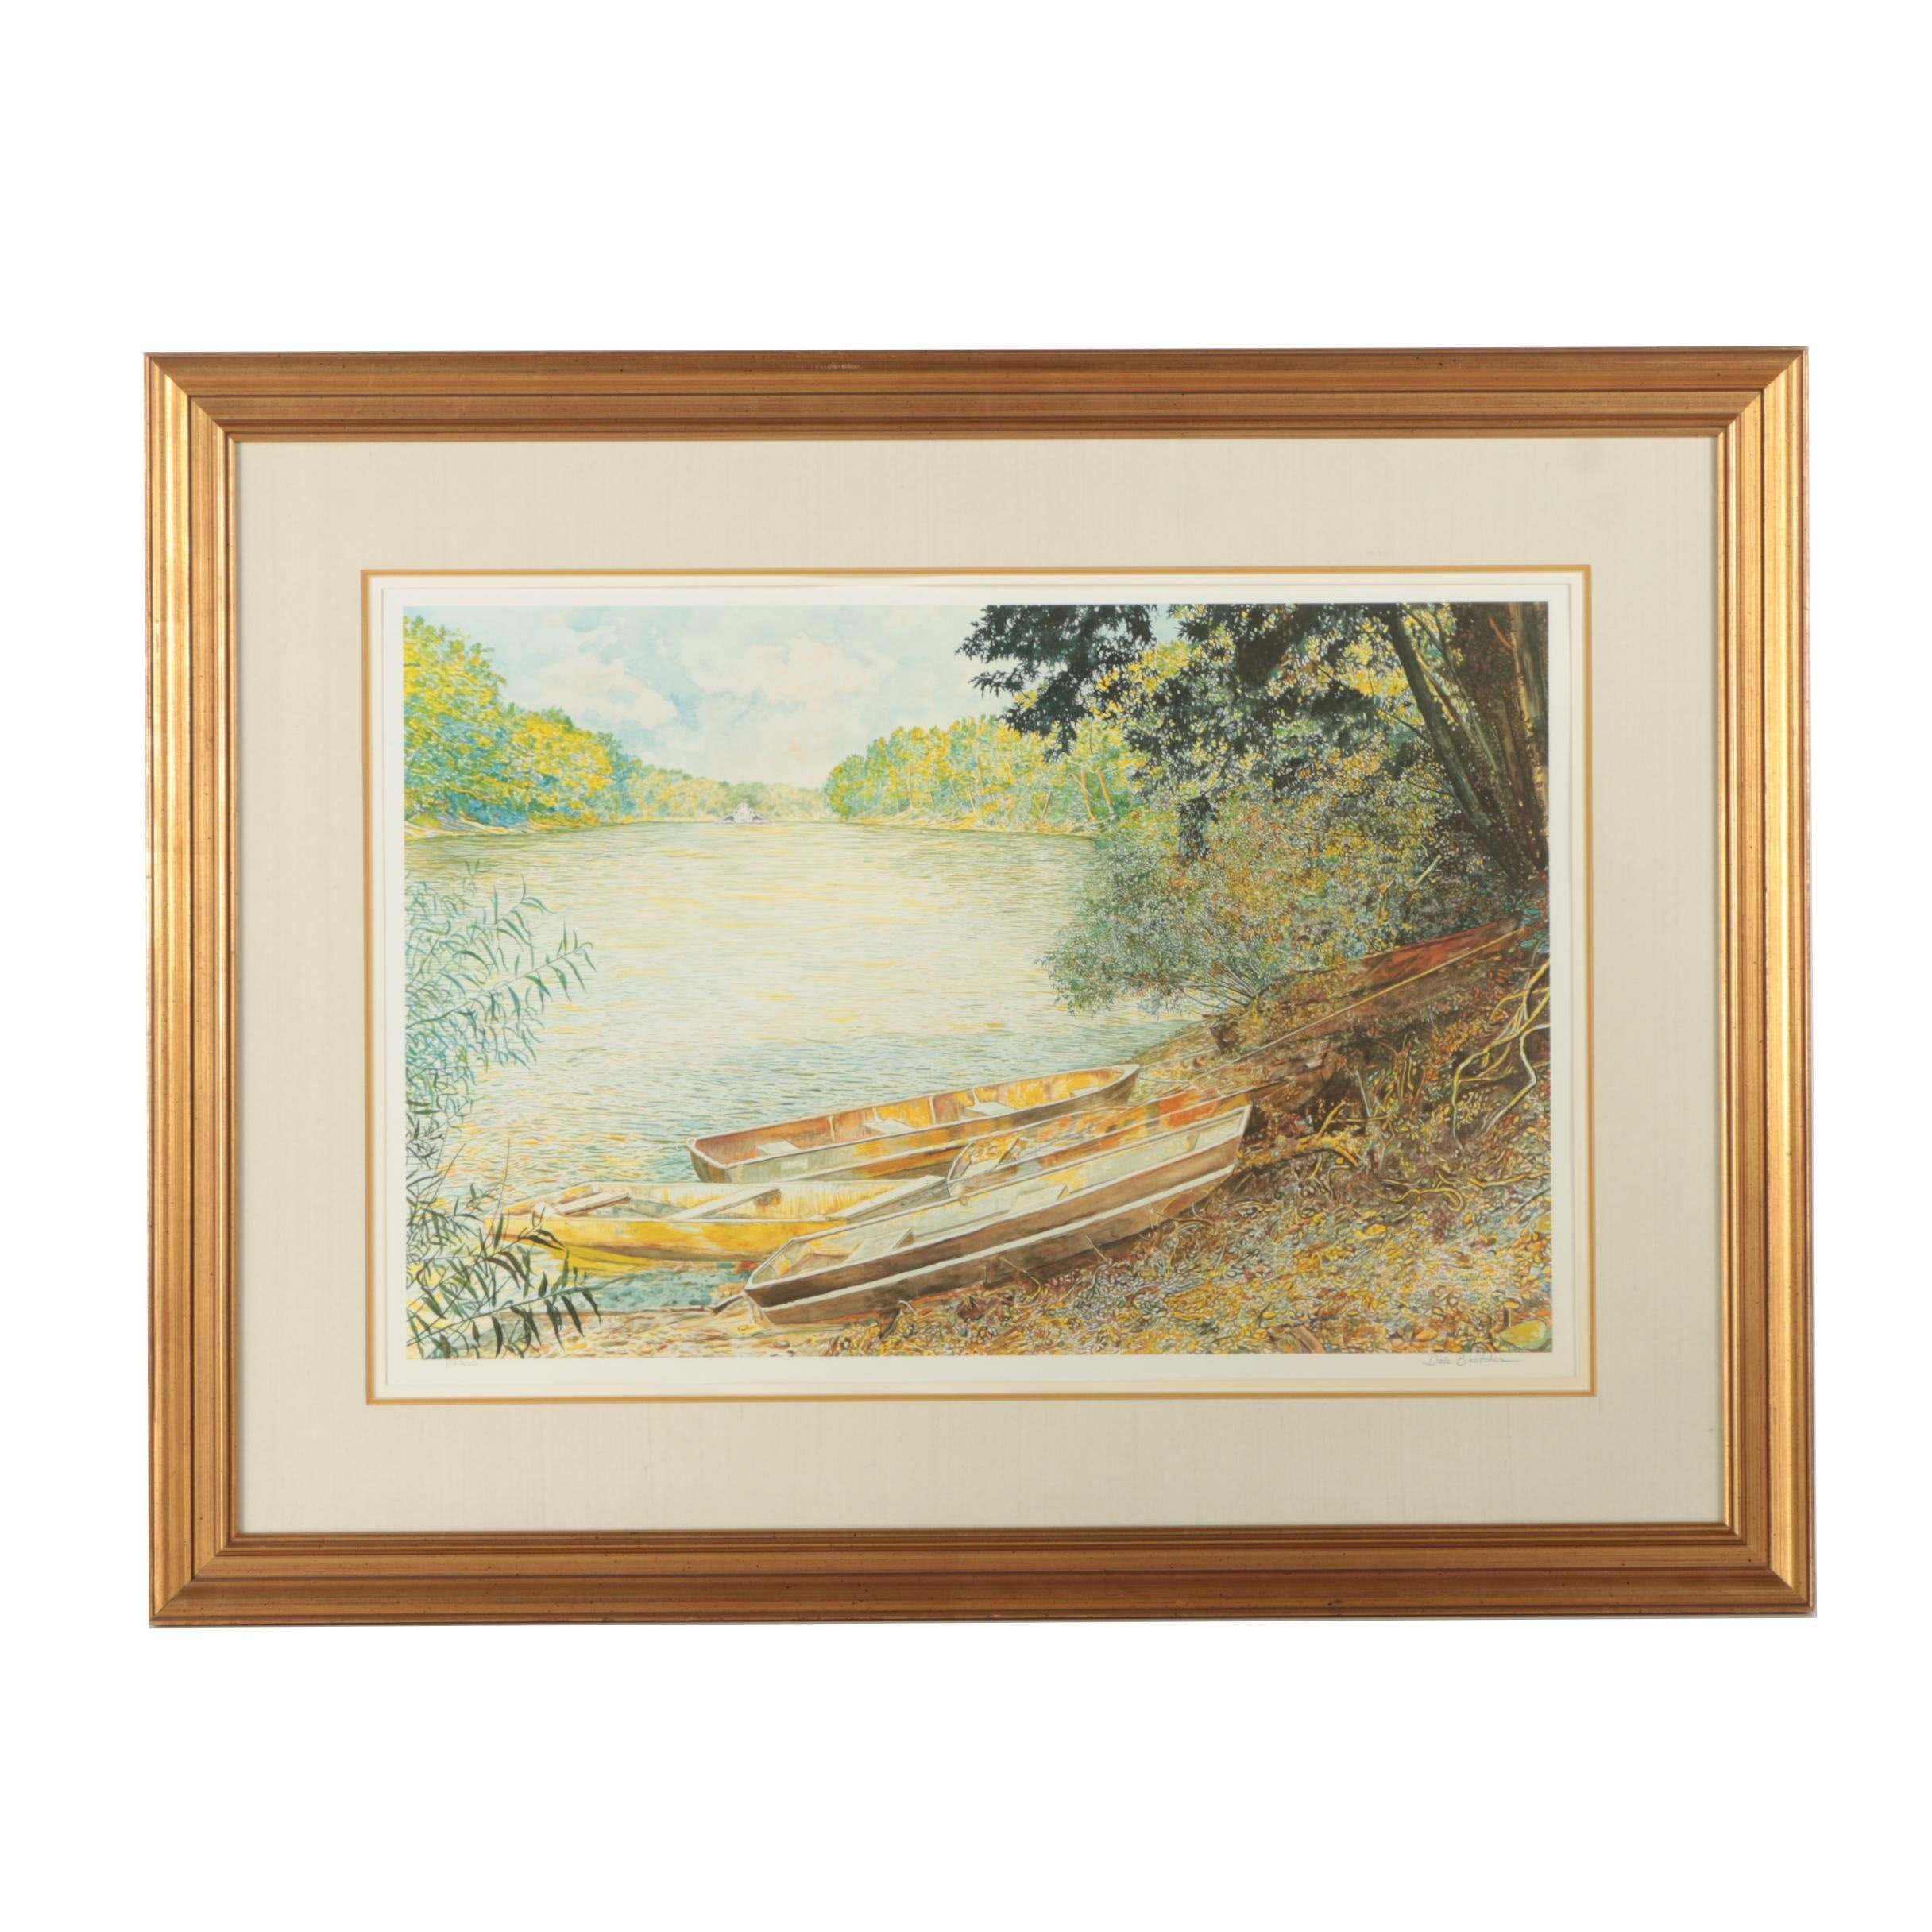 "Dale Bratcher Limited Edition Offset Lithograph Print ""Summer on the River"""